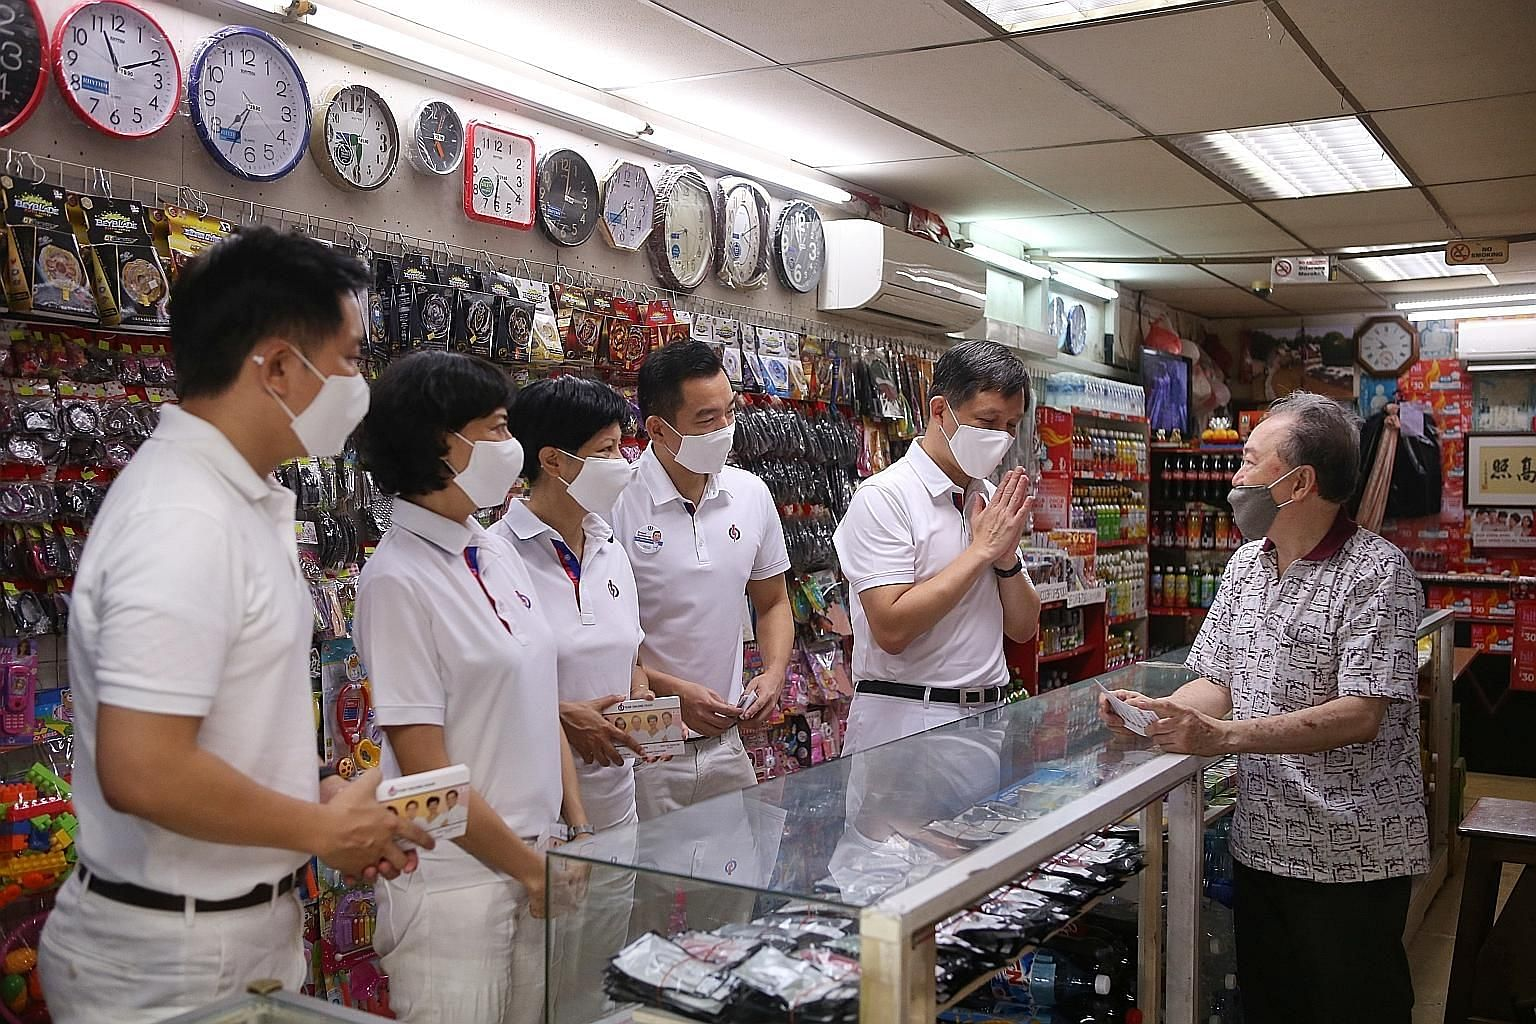 Trade and Industry Minister Chan Chun Sing greeting a shopkeeper on a visit to ABC Brickworks Market and Food Centre yesterday, with fellow members of the PAP team for Tanjong Pagar GRC (pictured from left) Alvin Tan, Joan Pereira, Indranee Rajah and